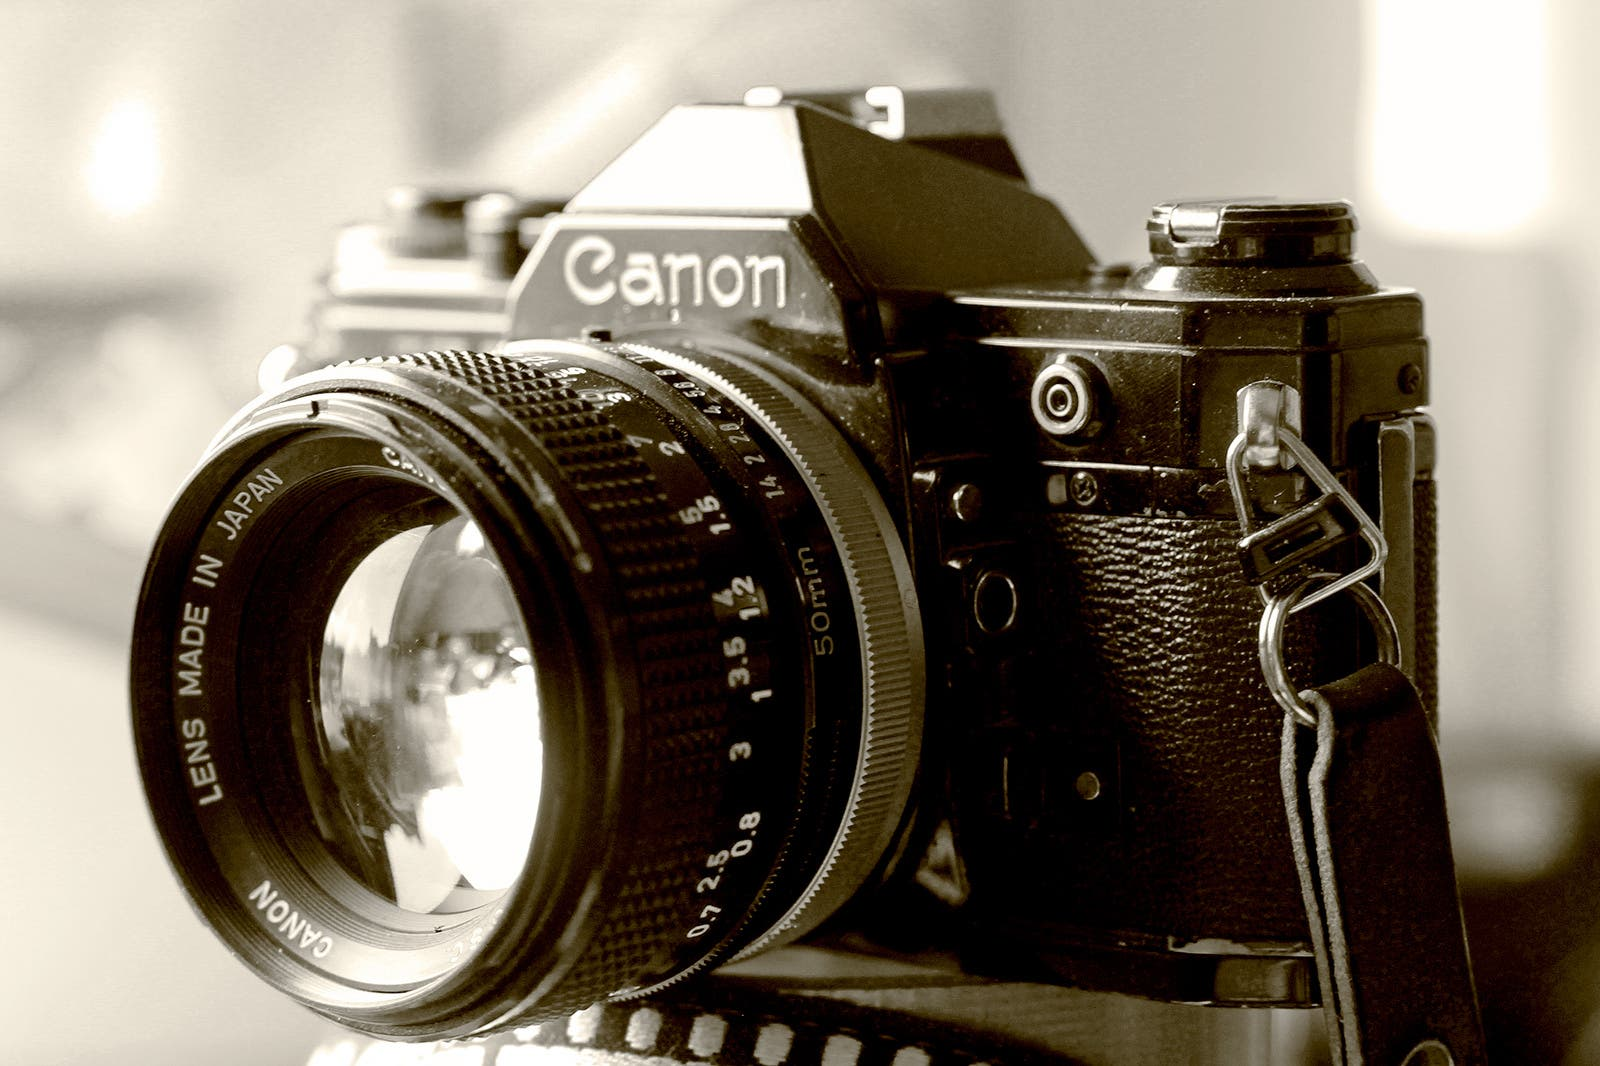 The Canon Ae 1 Slr That Helped Make Photography Simple Digital Camera Diagram Film My Journey Evan Schaaf